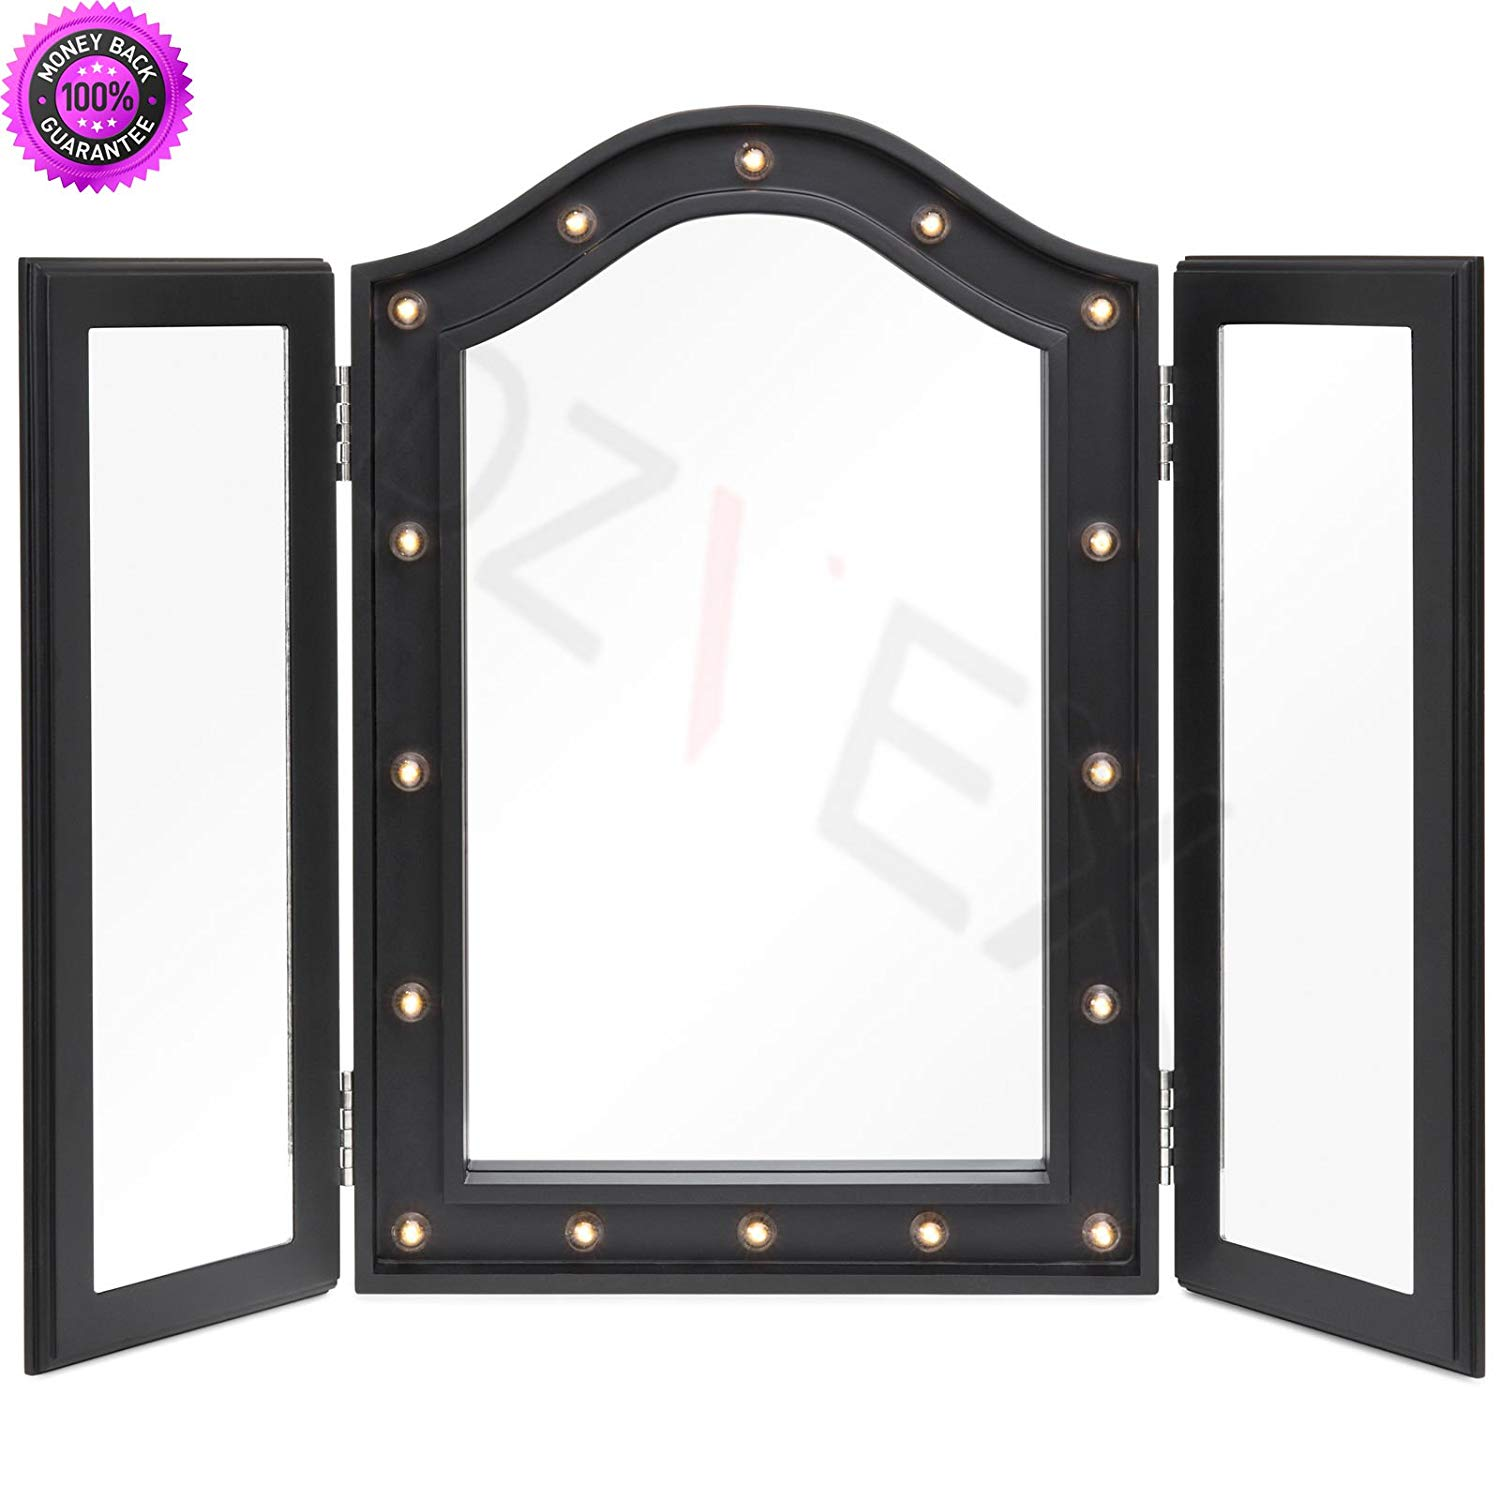 Ulta Lighted Makeup Mirror 5 000 Makeup Looks Ideas